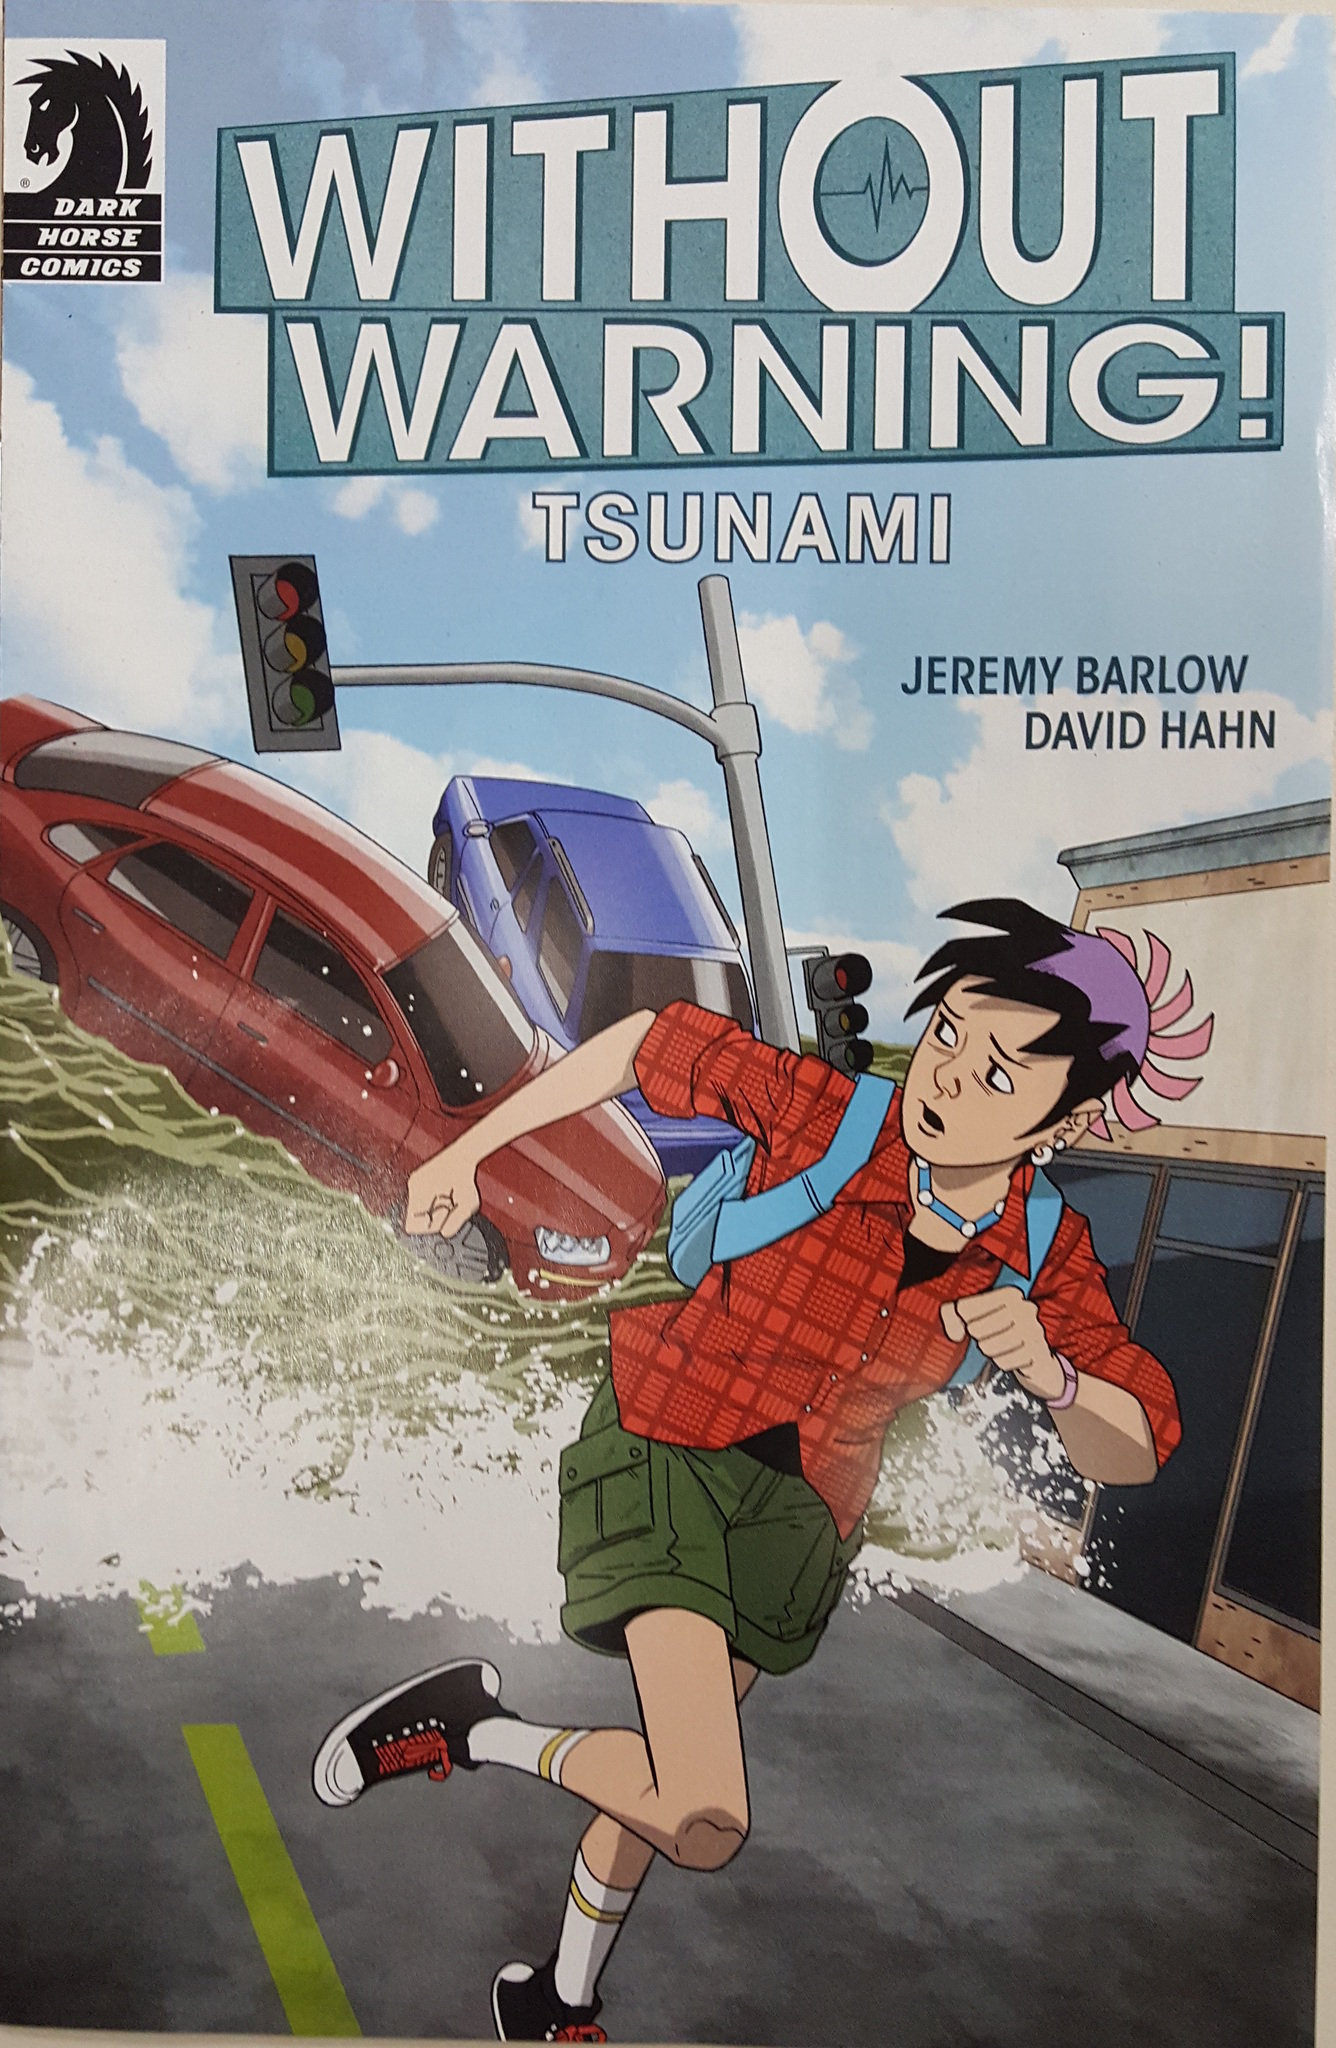 Image result for without warning tsunami